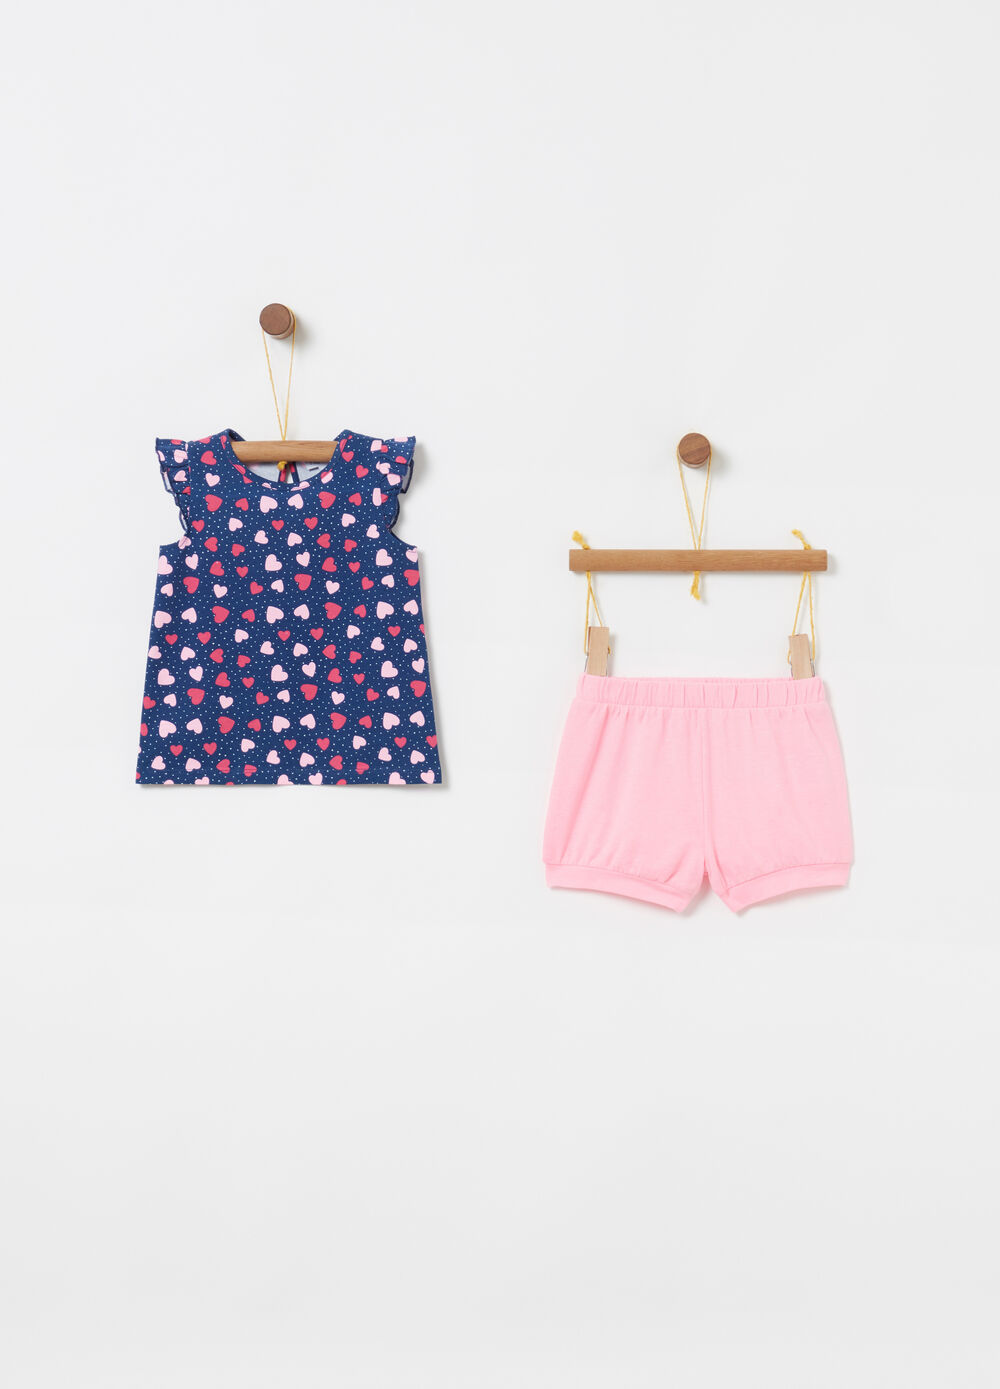 Jogging set with vest and shorts with hearts and polka dots